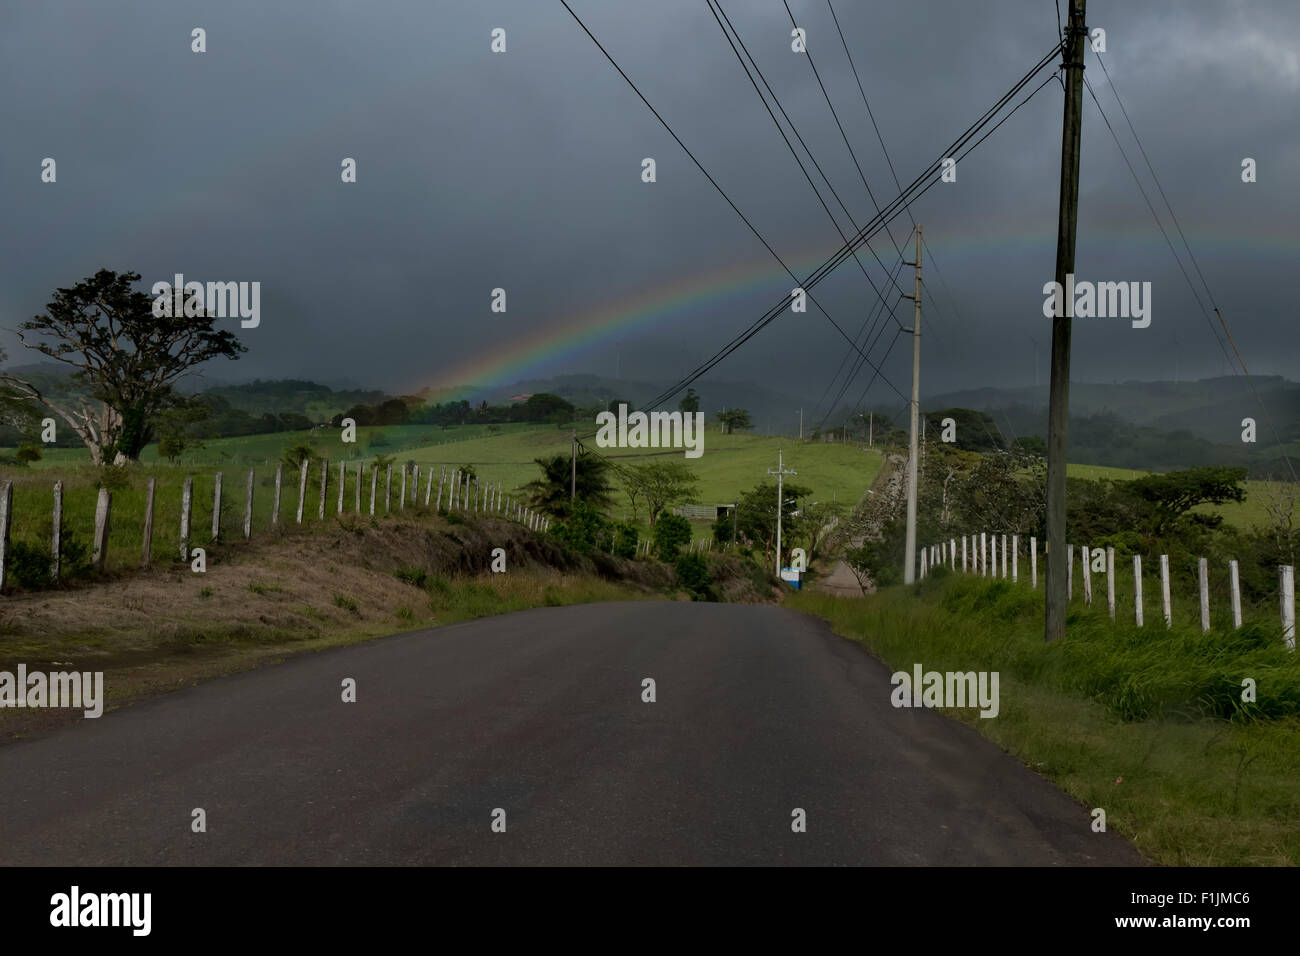 Rainbow and road, landscape after rain, rainstorm, storm in Guanacaste province, Costa Rica, Central America - Stock Image